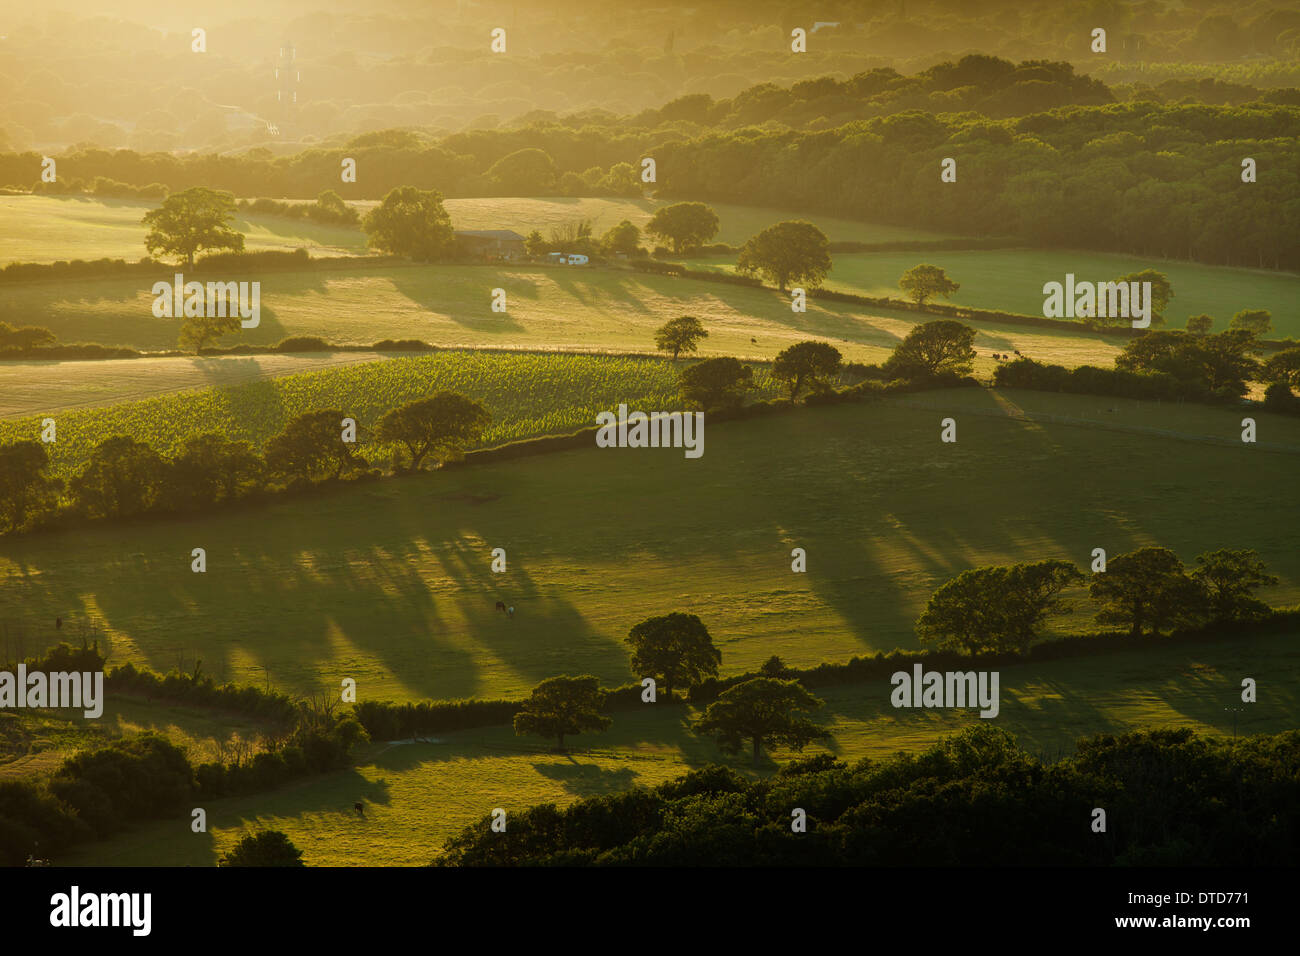 Evening on the South Downs near Poynings, West Sussex, UK - Stock Image